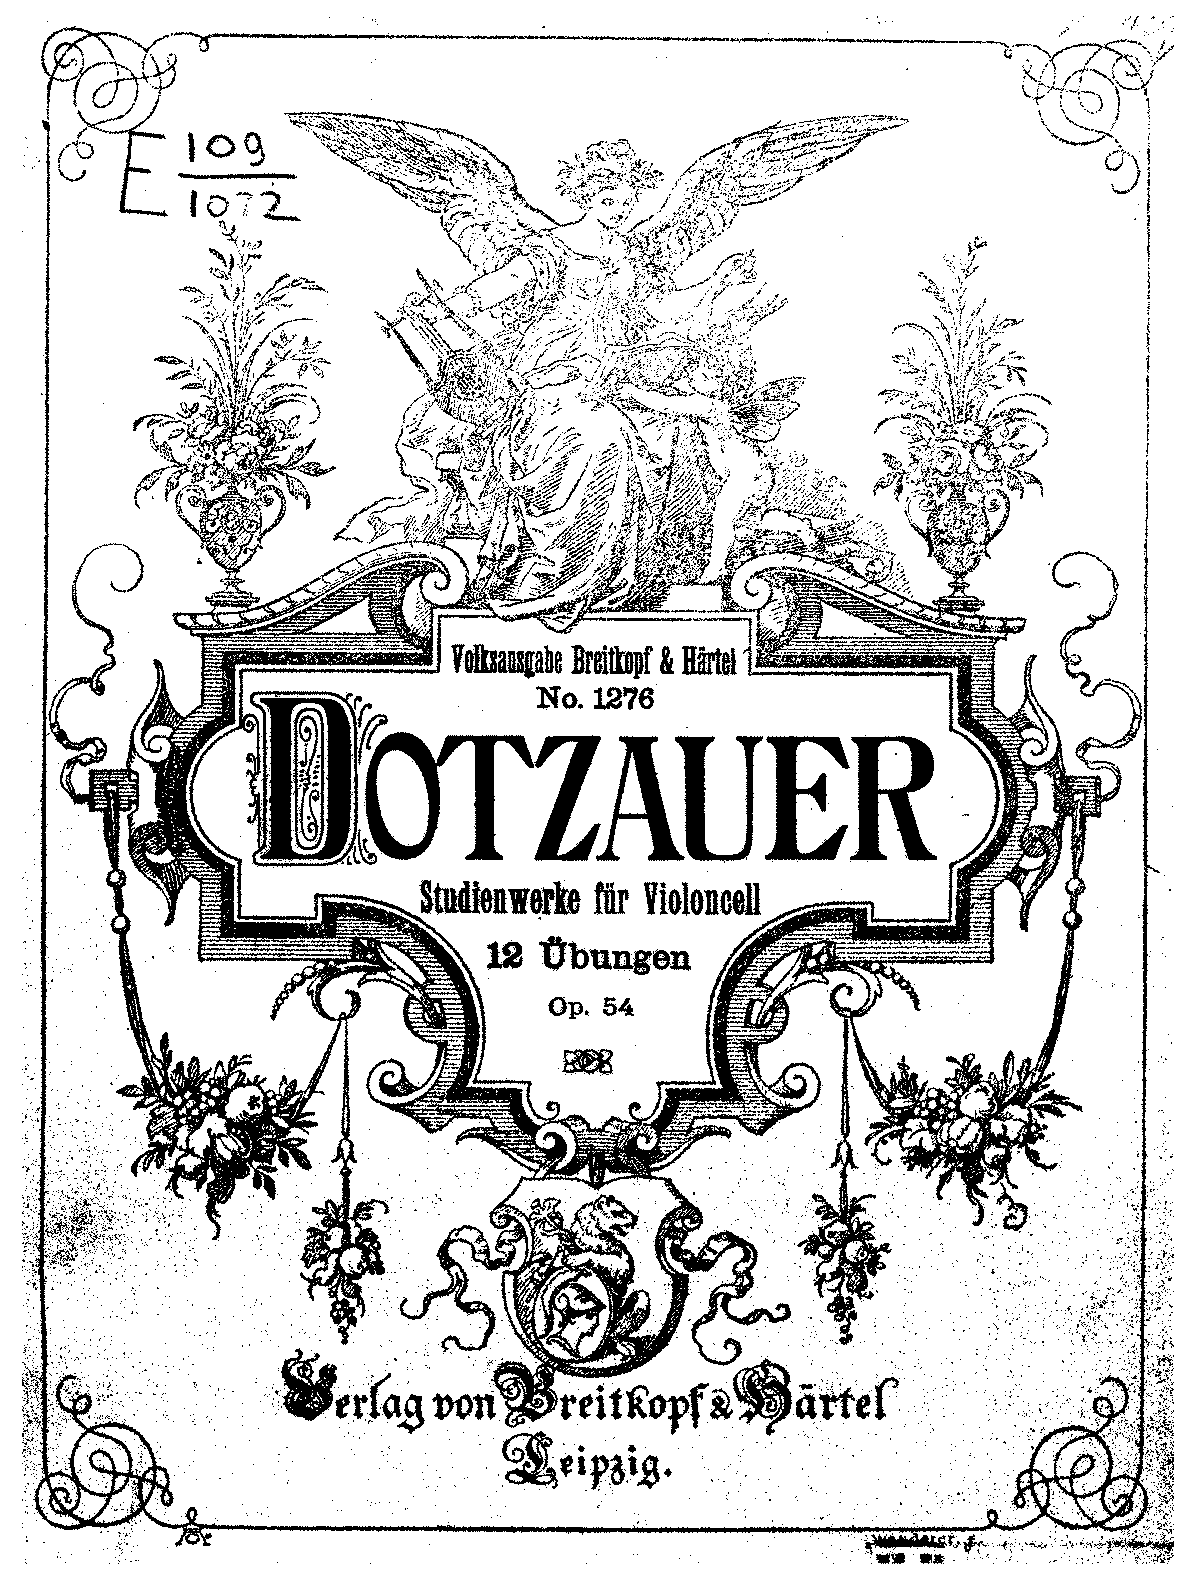 PMLP221104-Dotzauer - 12 Ubungen Op54 (Hullweck) for Cello.pdf